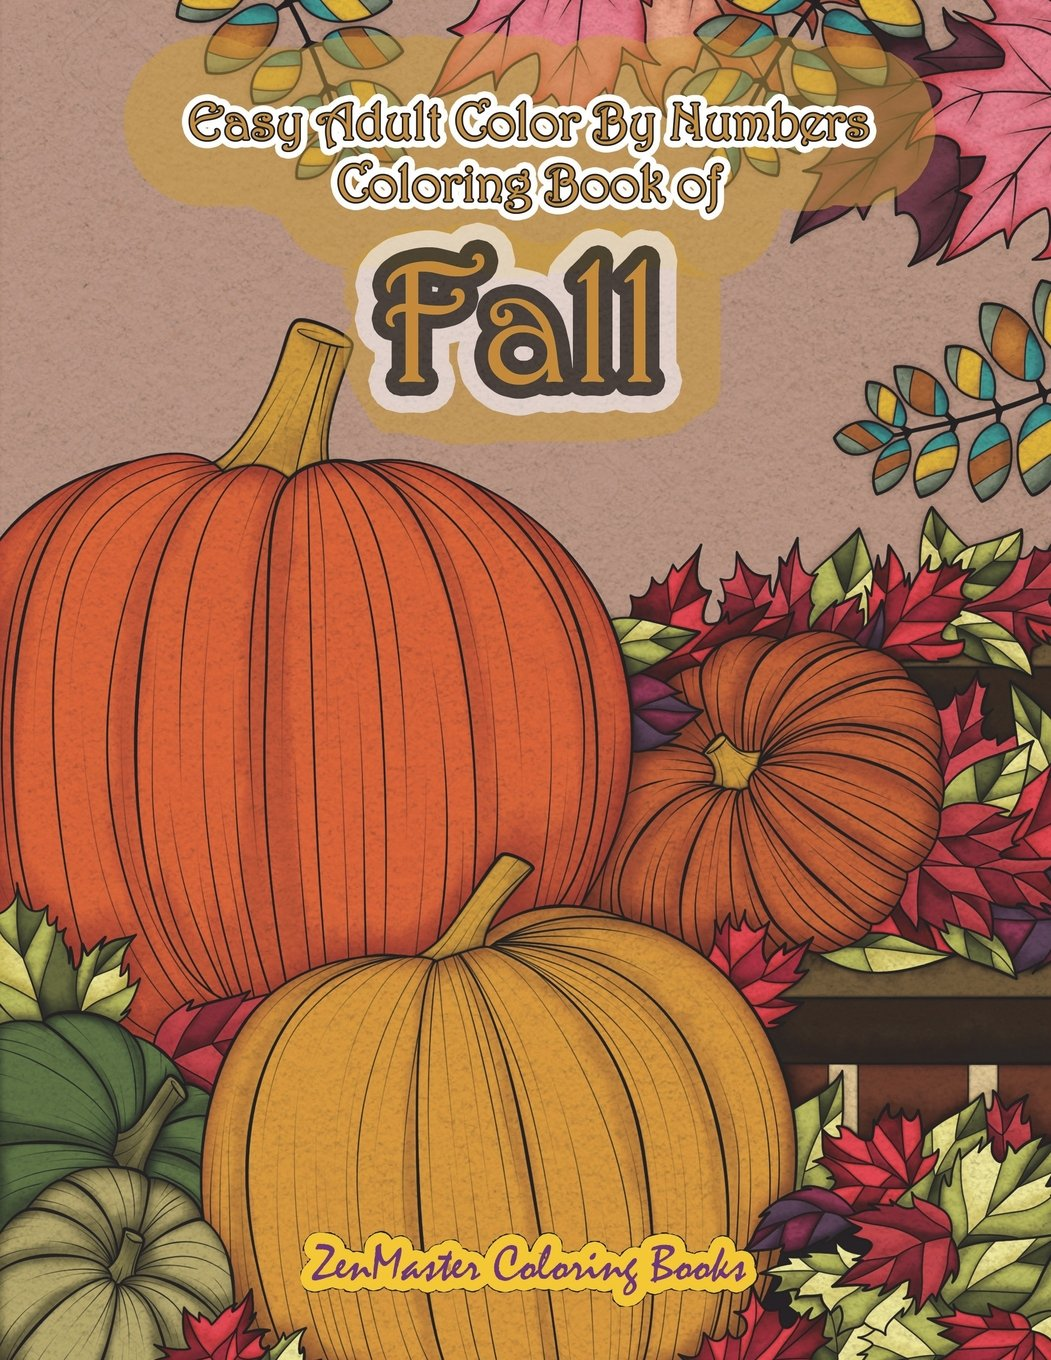 Easy Adult Color By Numbers Coloring Book of Fall: Simple and Easy Color By Number Coloring Book for Adults of Autumn Inspired Scenes and Themes ... Color By Number Coloring Books) (Volume 34) pdf